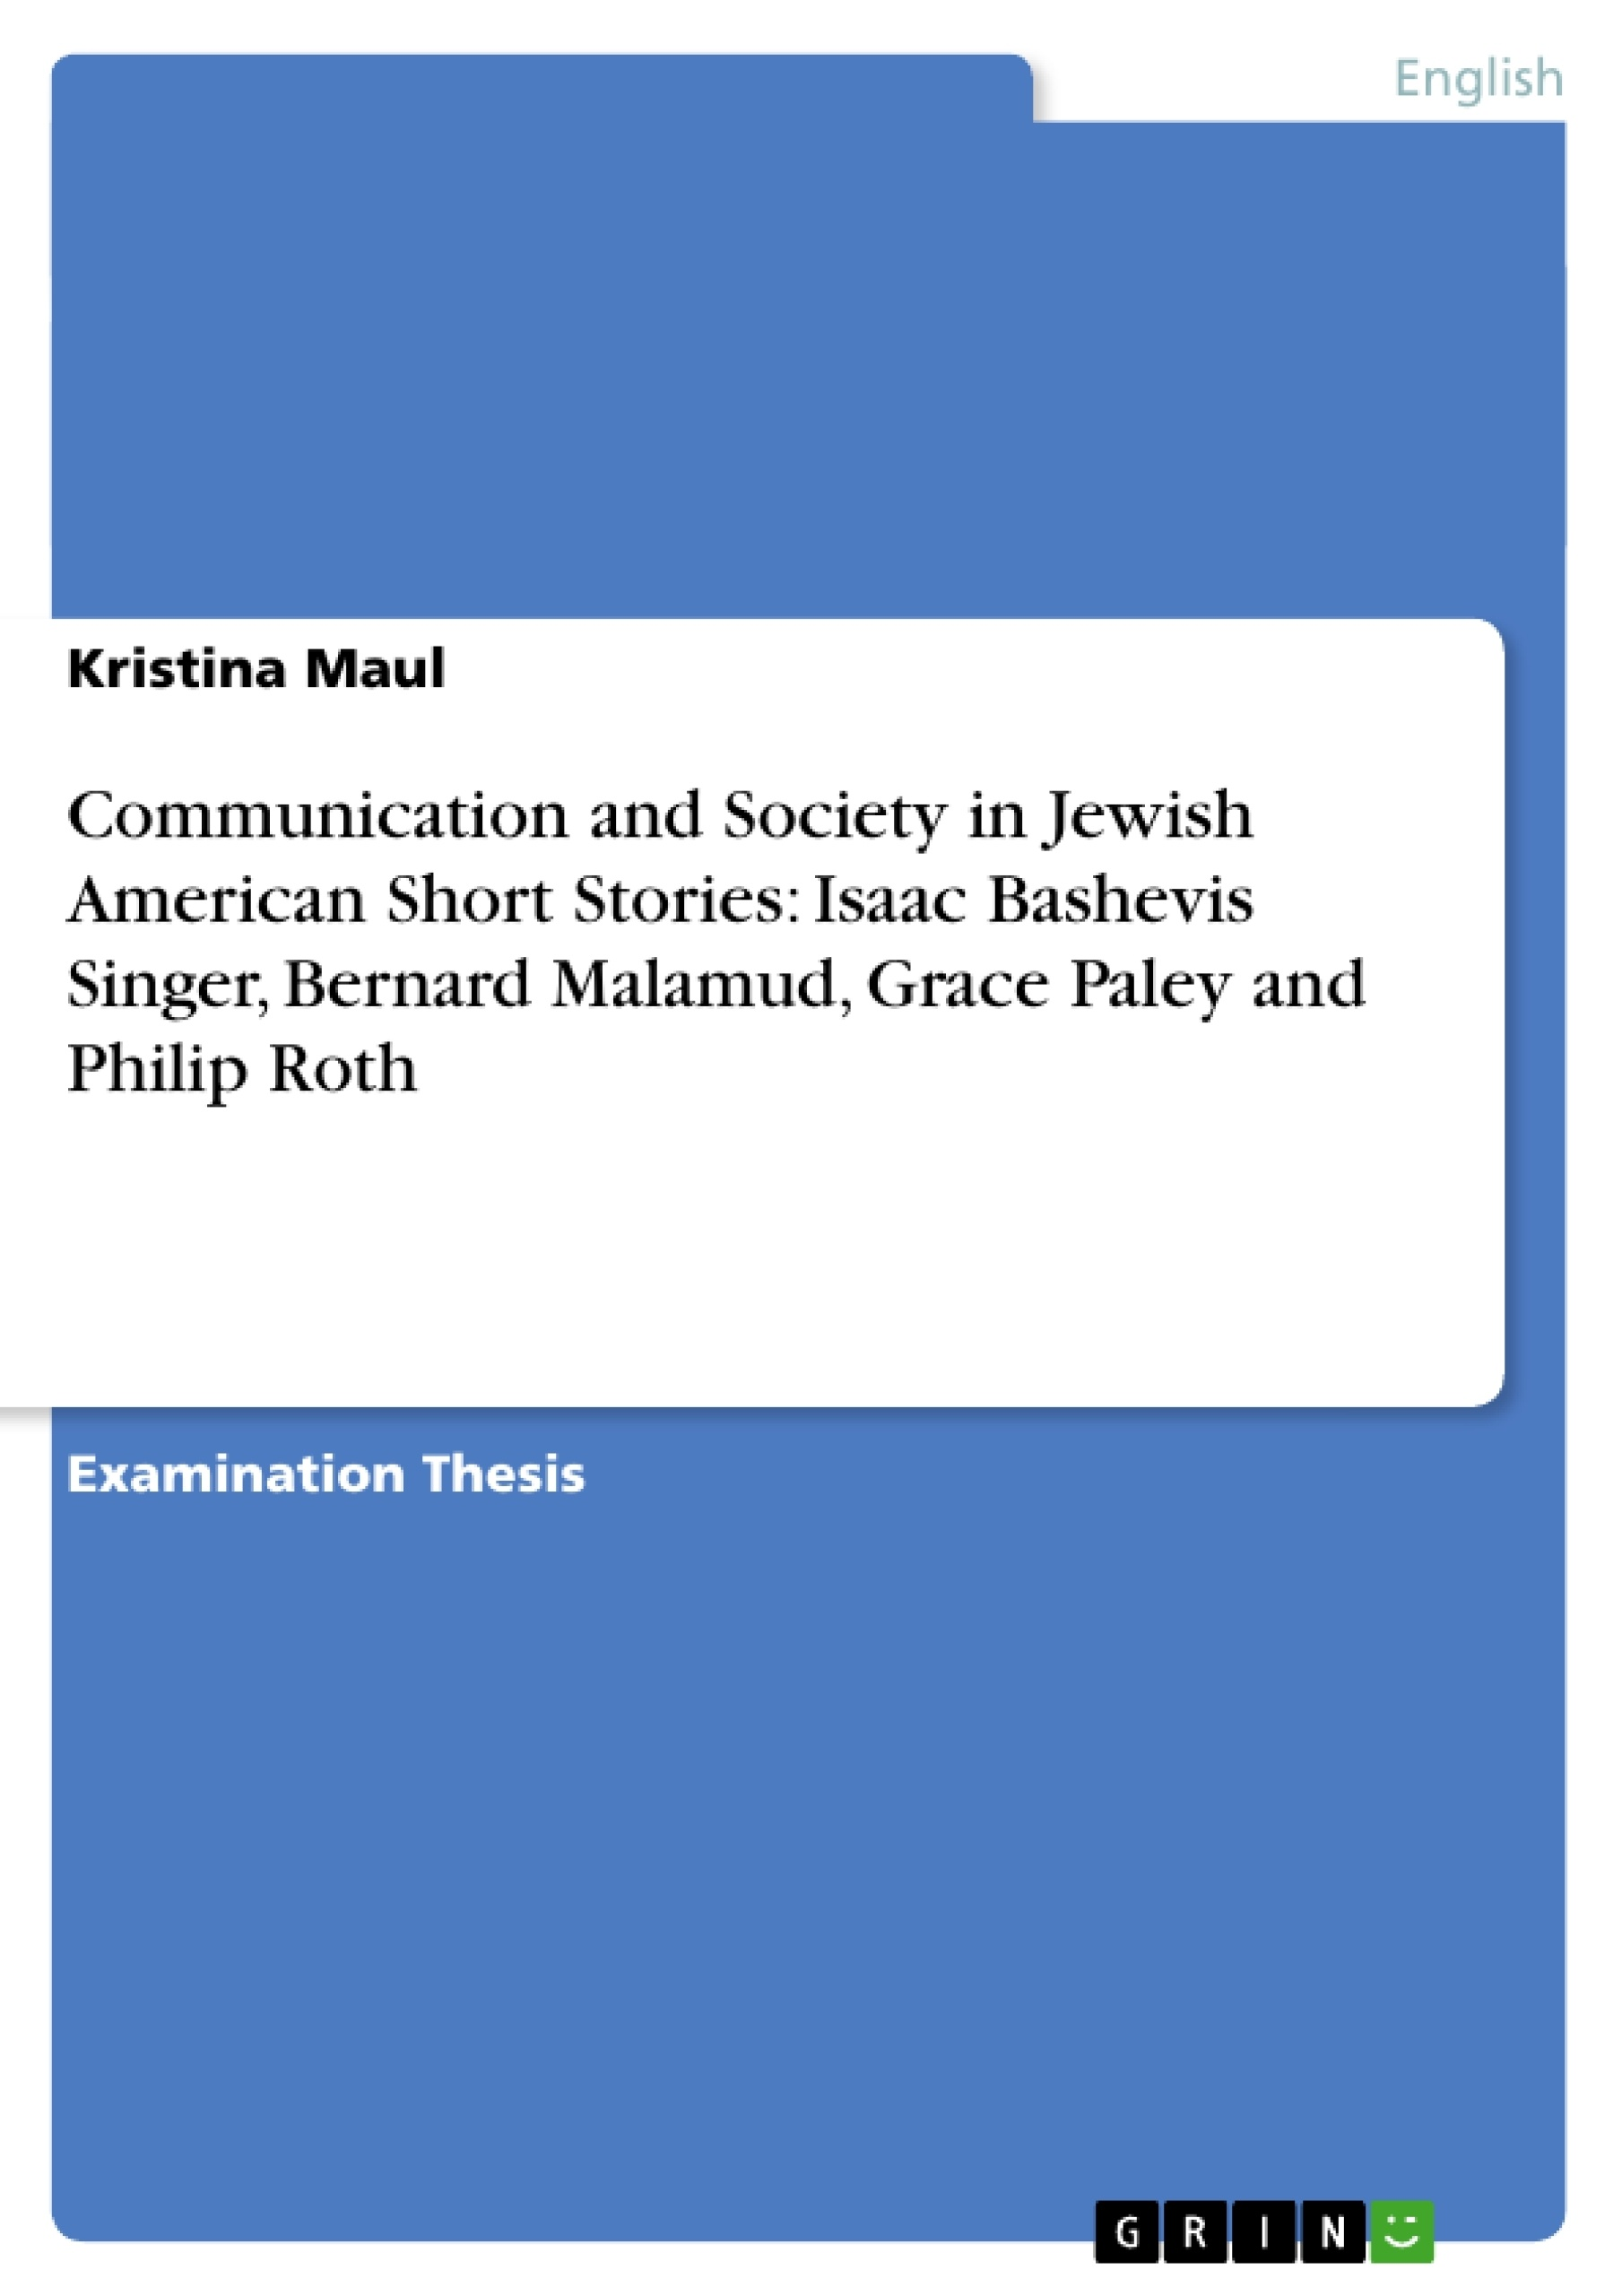 Title: Communication and Society in Jewish American Short Stories: Isaac Bashevis Singer, Bernard Malamud, Grace Paley and Philip Roth